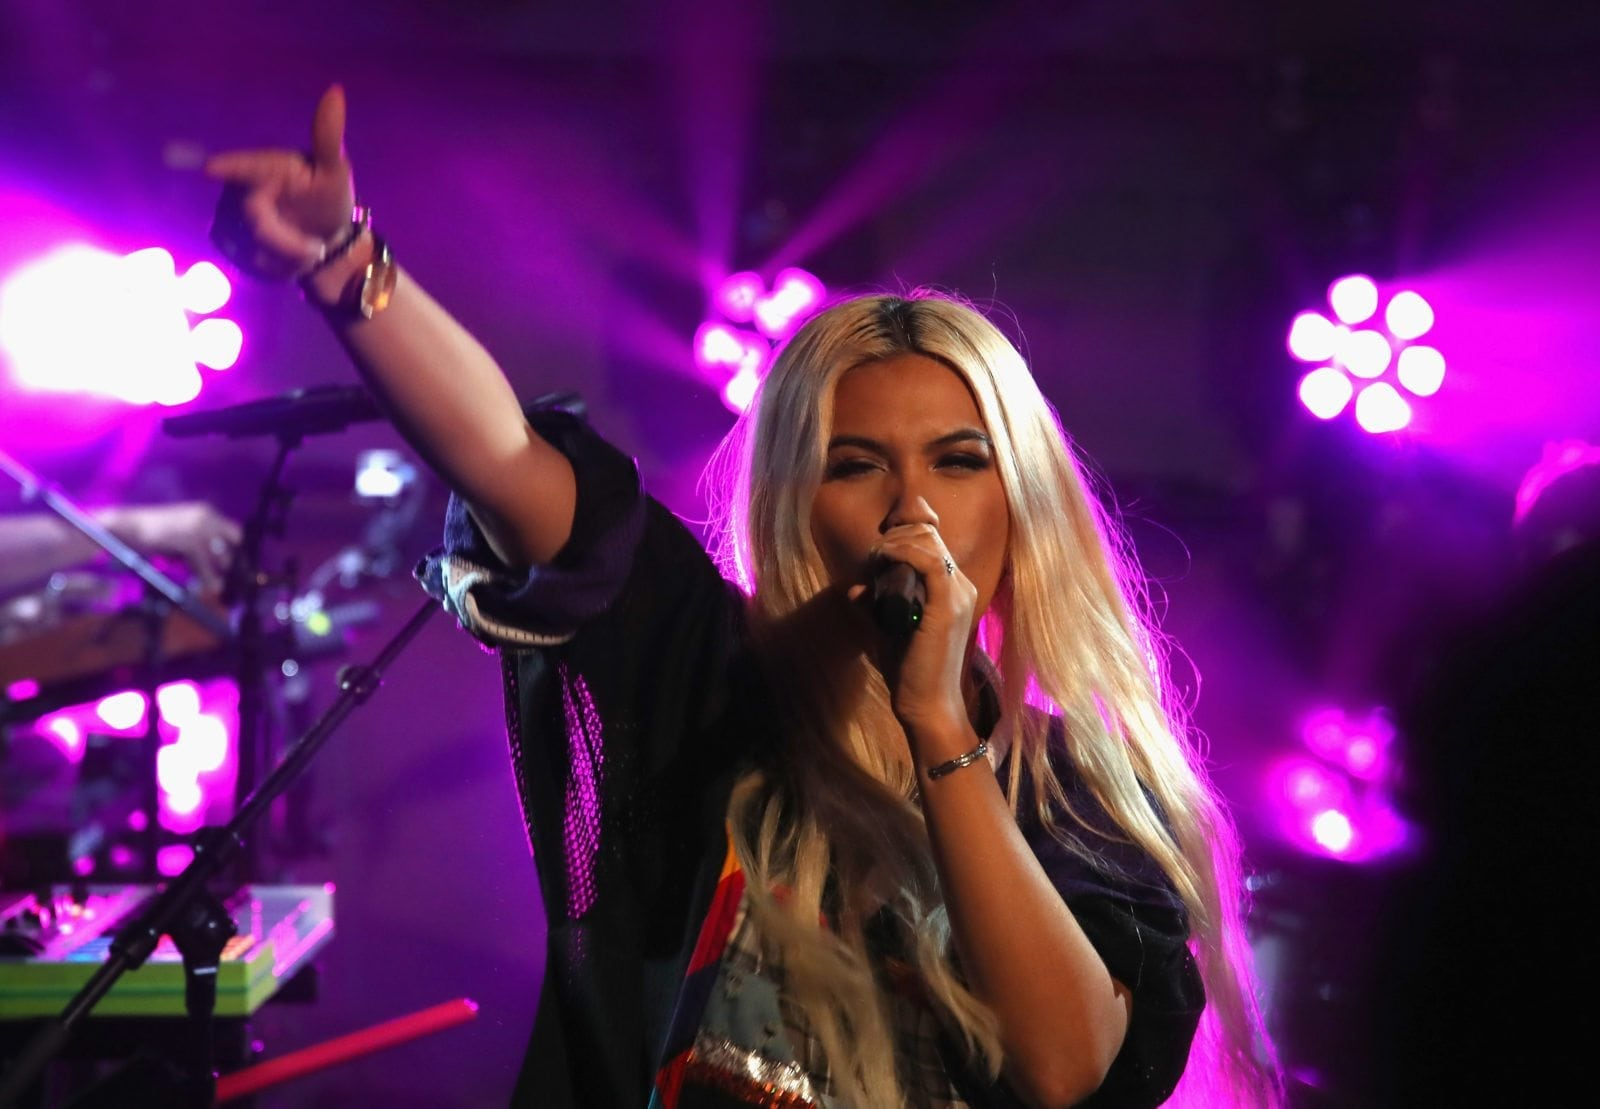 Hayley Kiyoko came out as a lesbian to help 'normalise' sexuality for other people